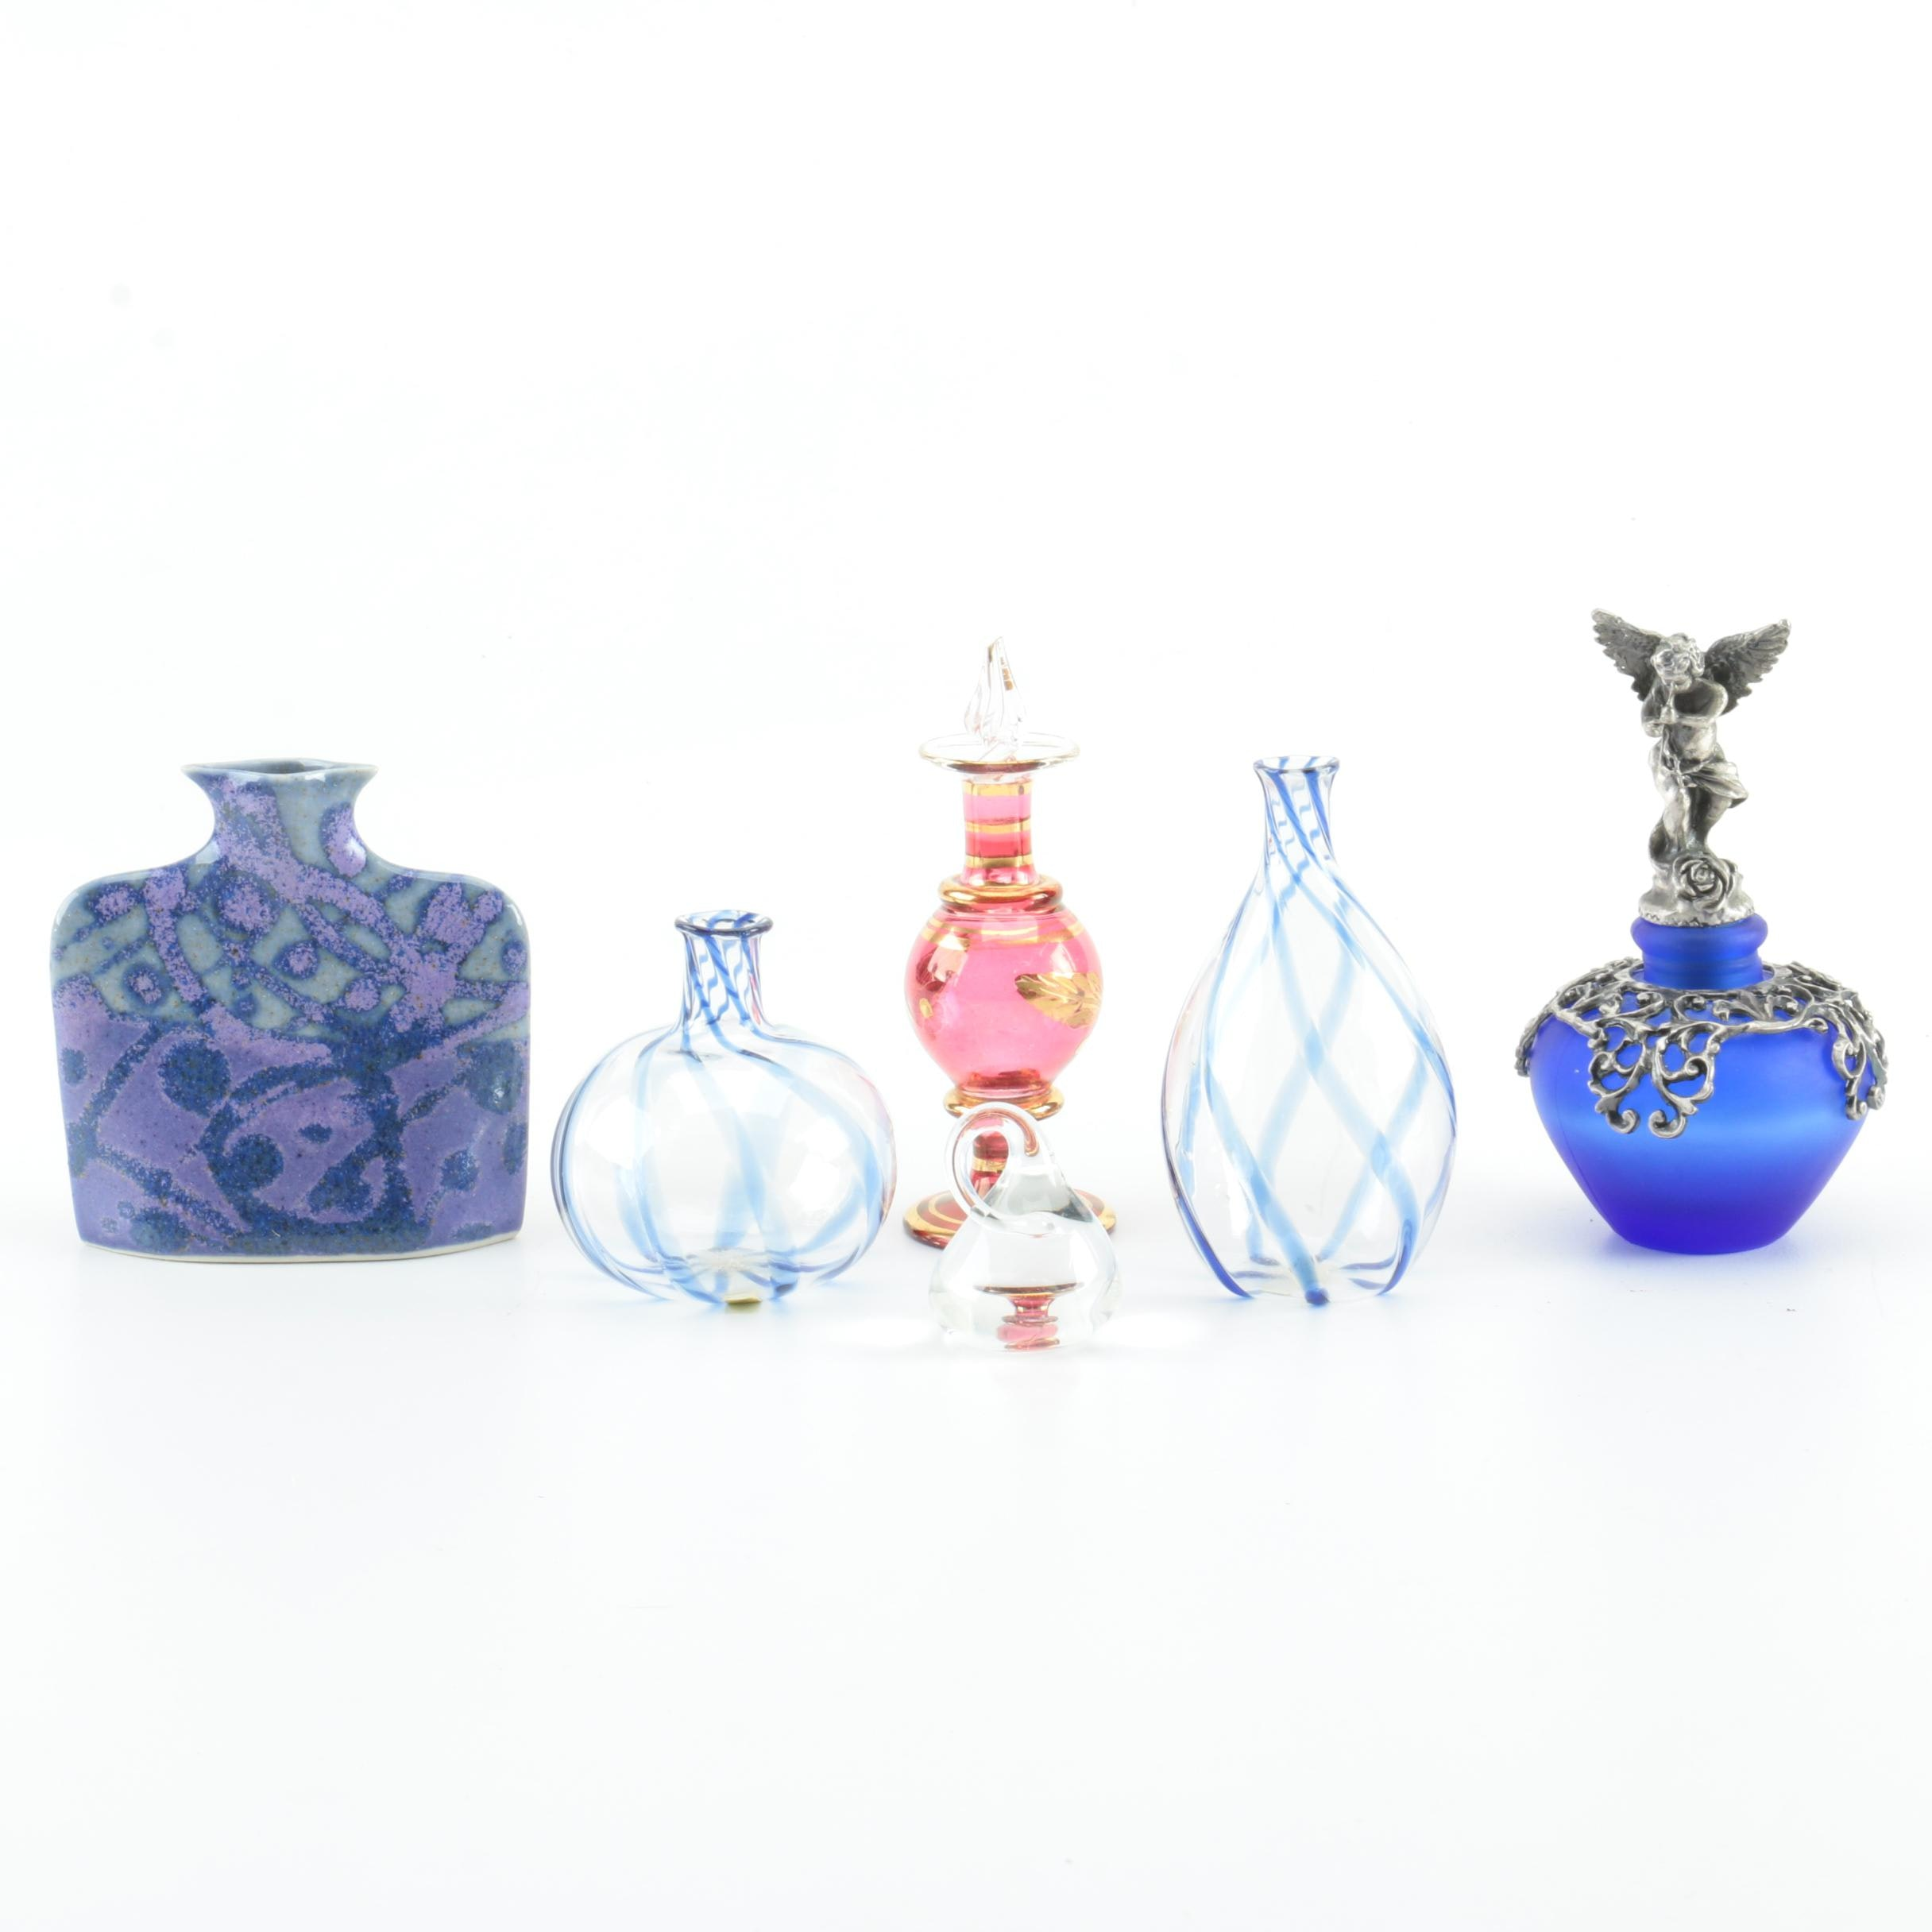 Selection of Glass Decorative Items